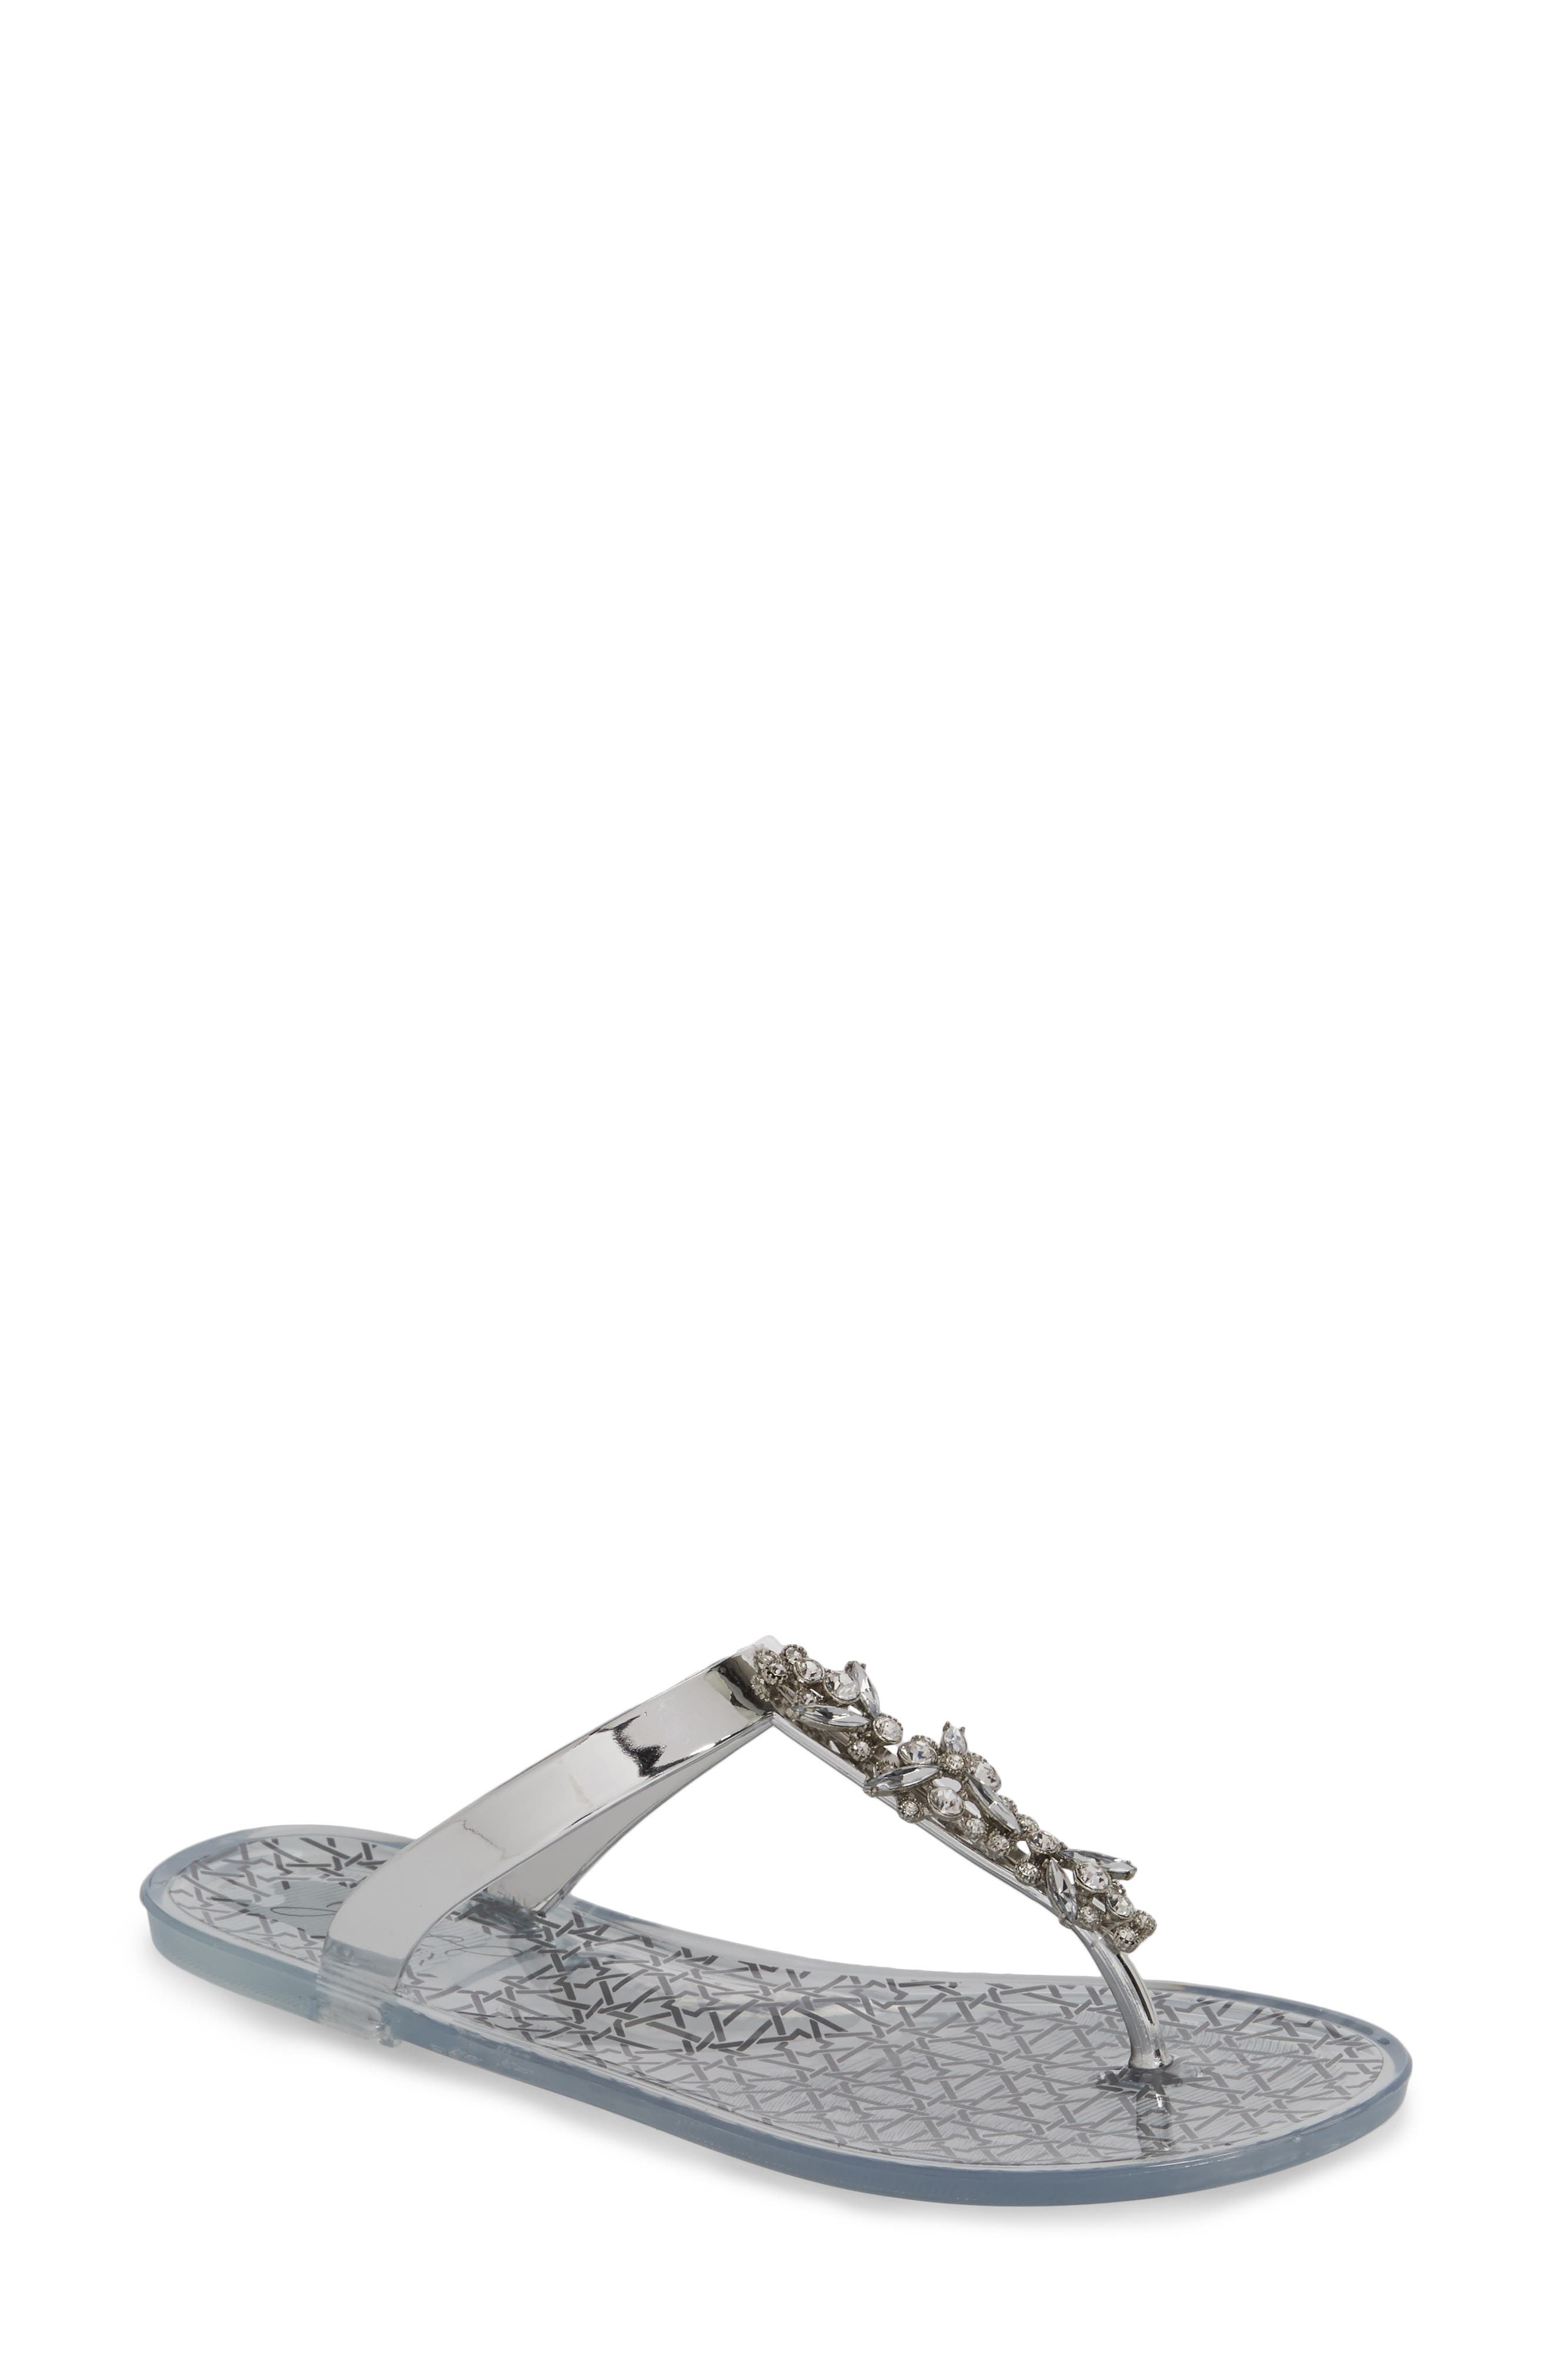 Gracia Embellished Sandal,                             Main thumbnail 1, color,                             040